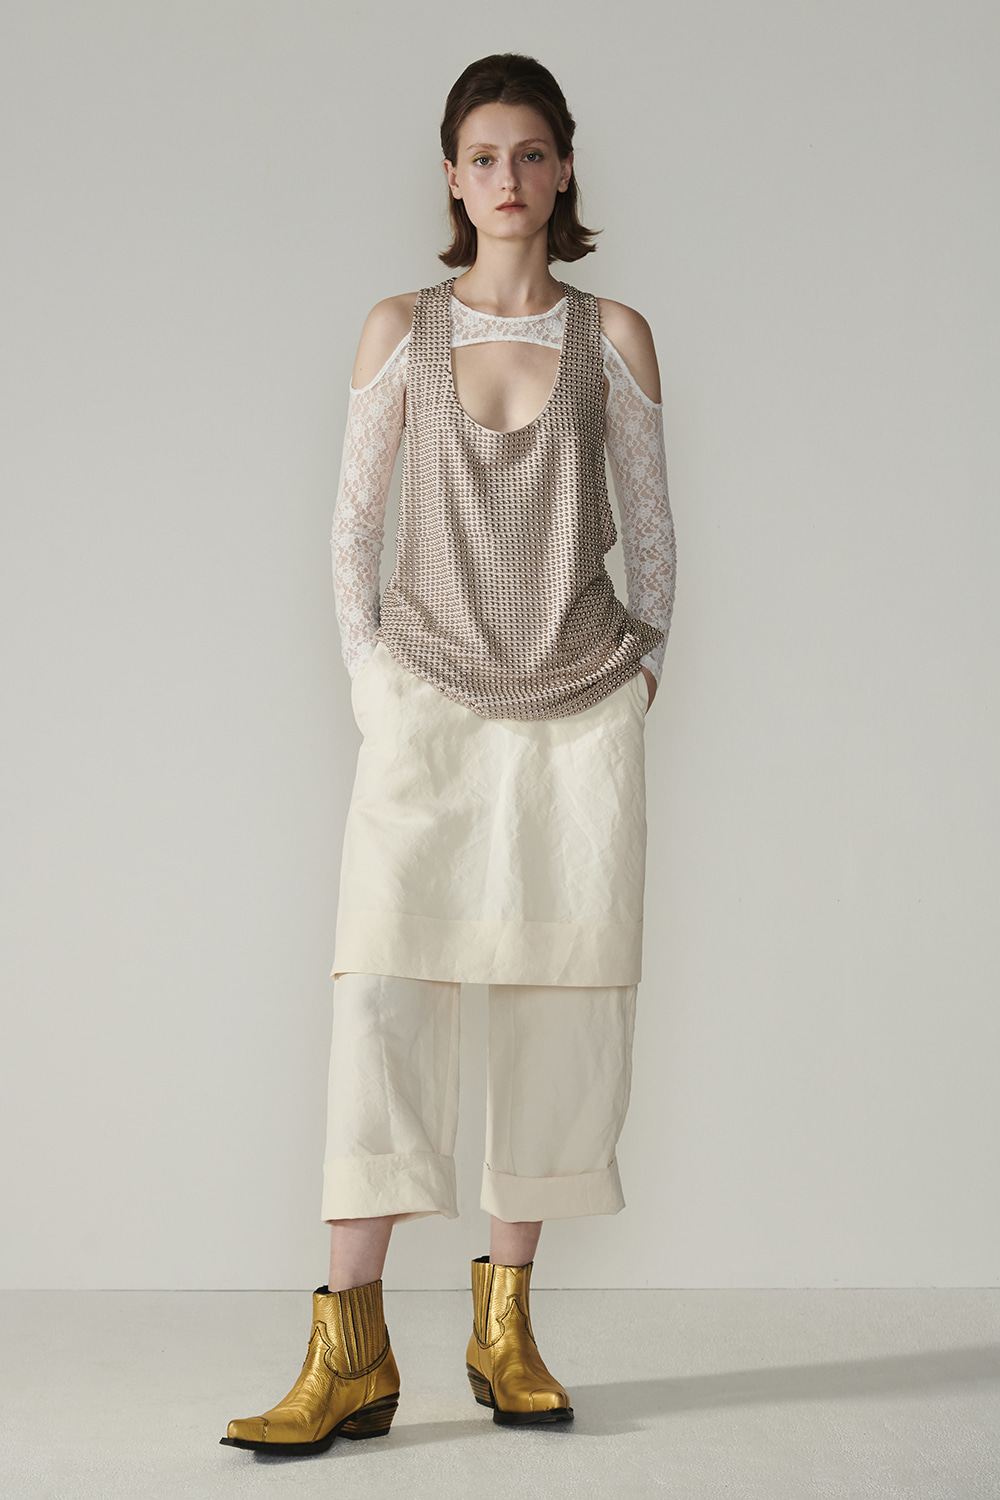 SS21 FRONT SKIRT LAYERED IVORY PANTS